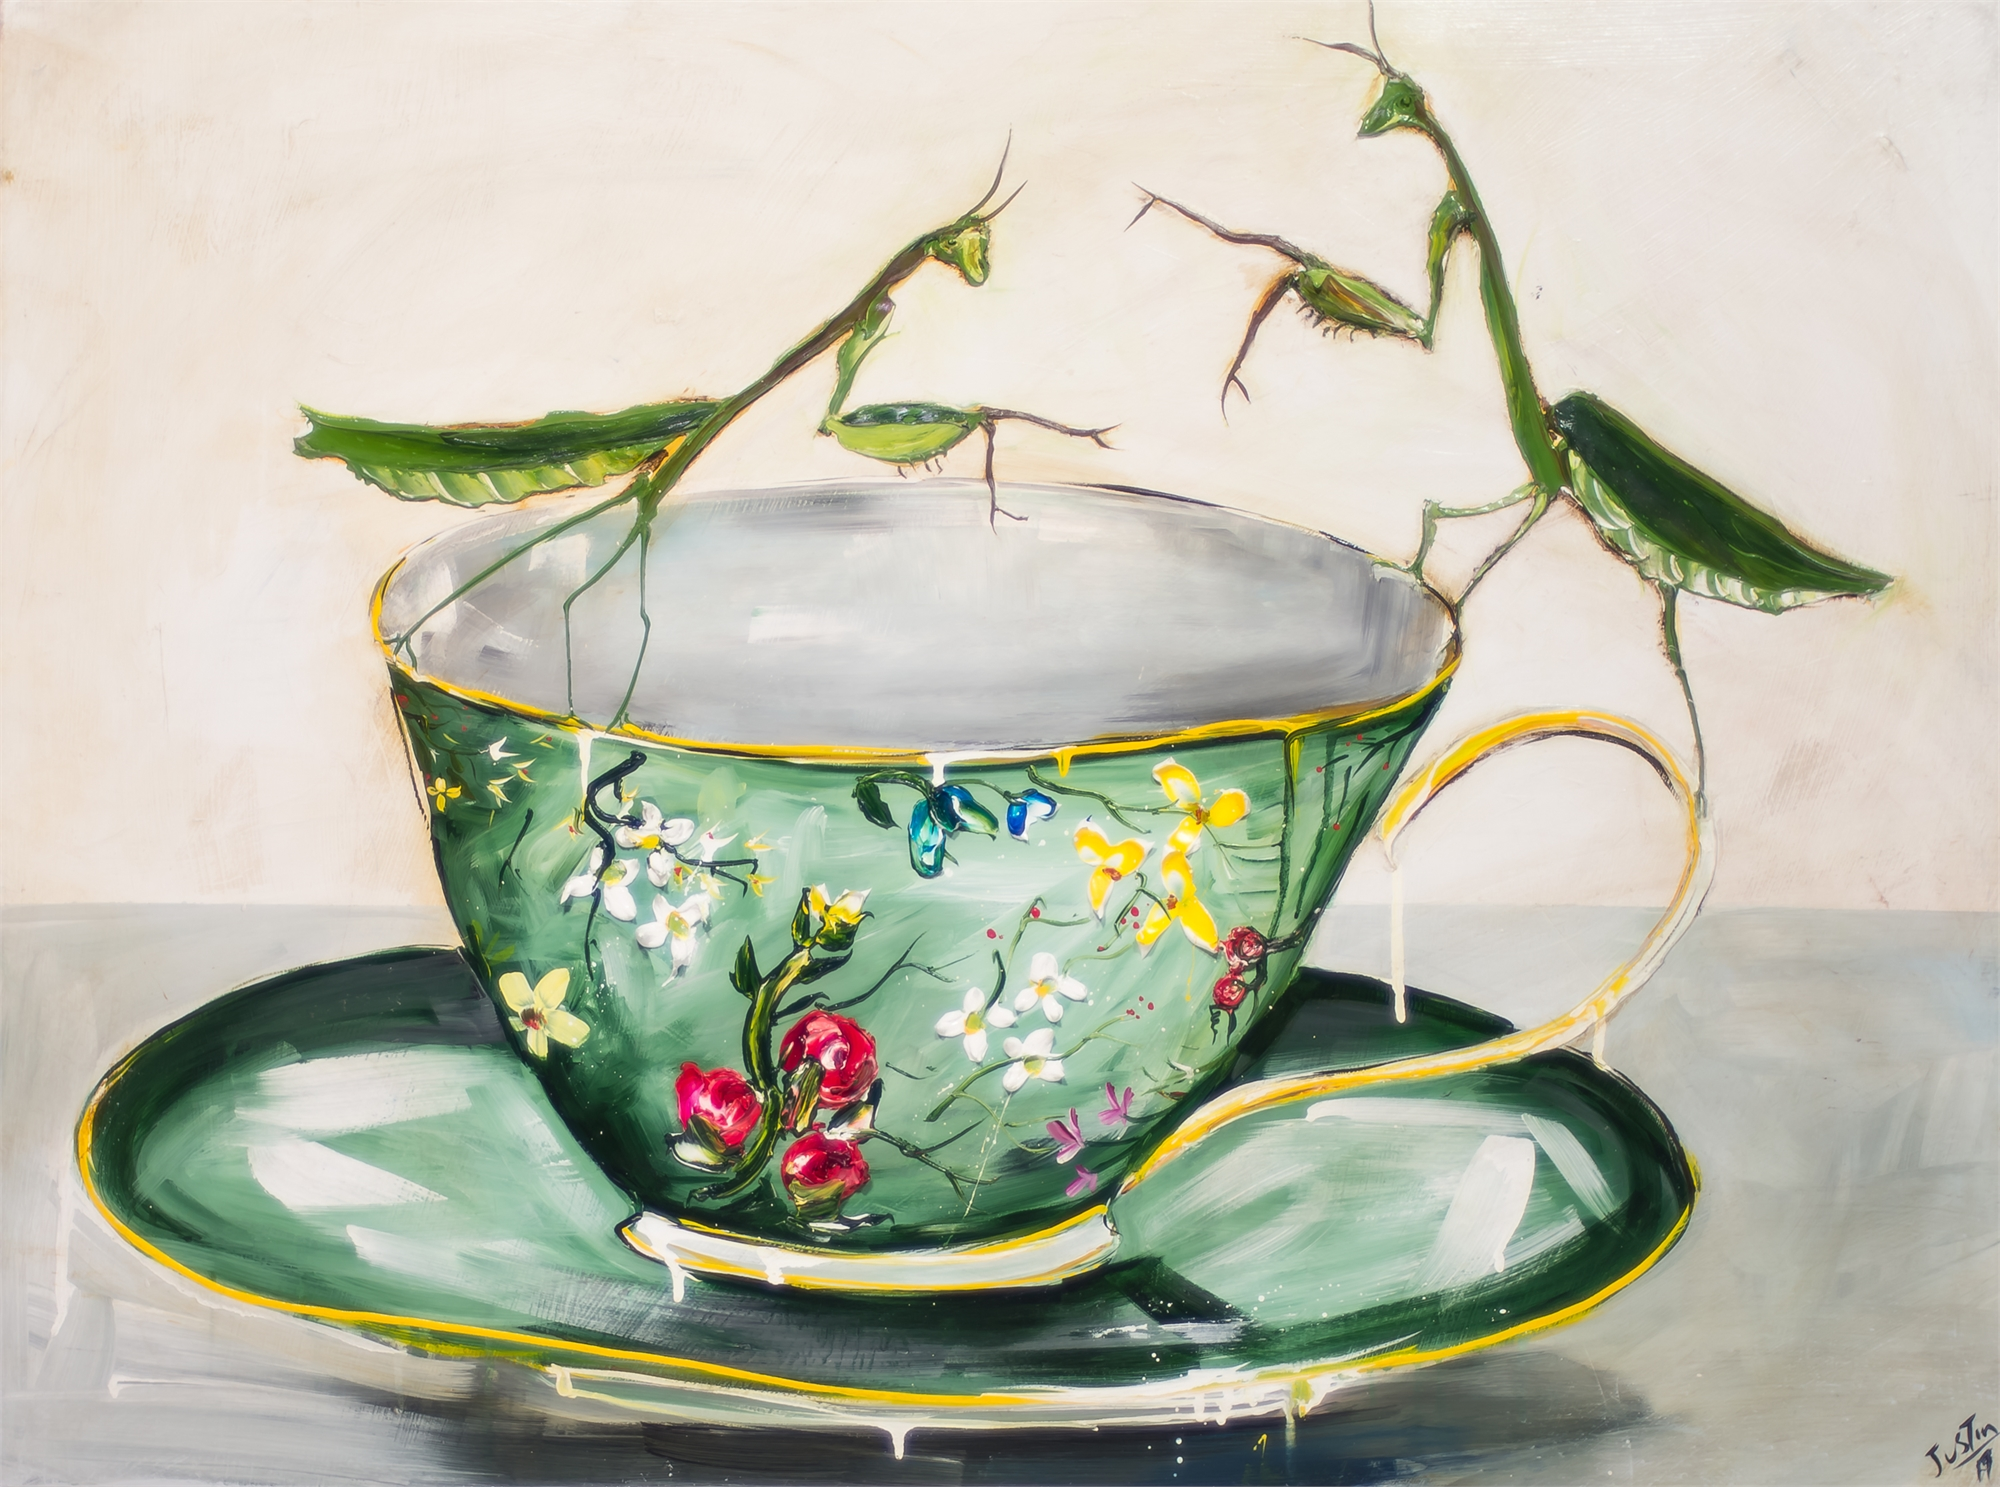 MANTIS AND CUP MAC40X30-2019-139 by Justin Gaffrey